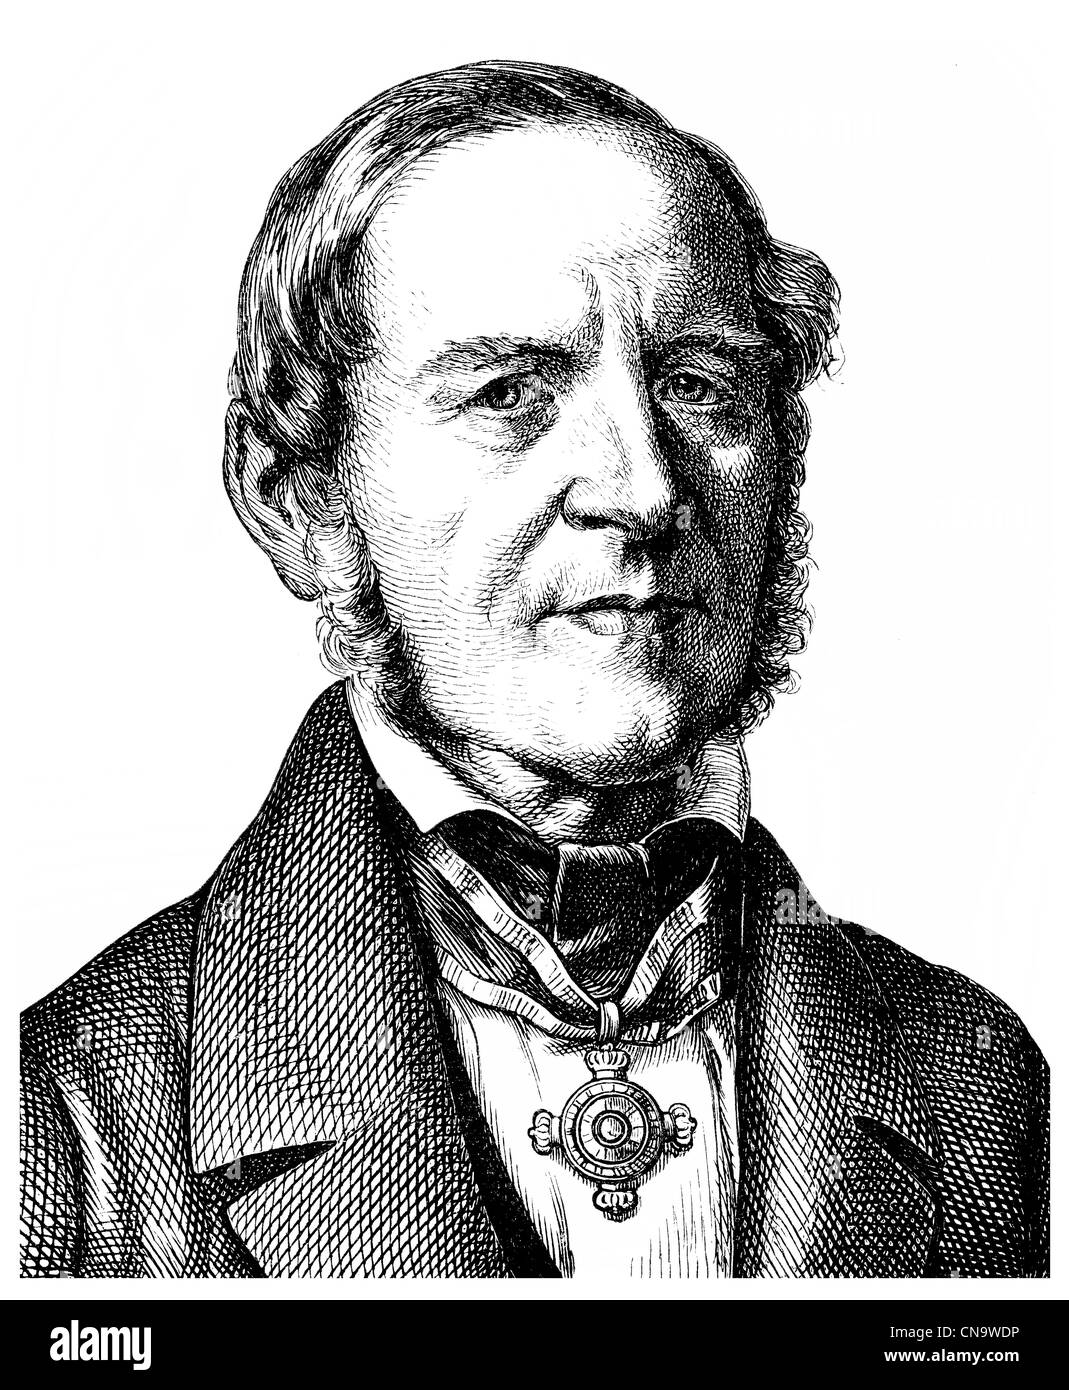 Historical drawing, 19th century, August Boeckh, 1785 - 1867, a German classical scholar and archaeologist - Stock Image